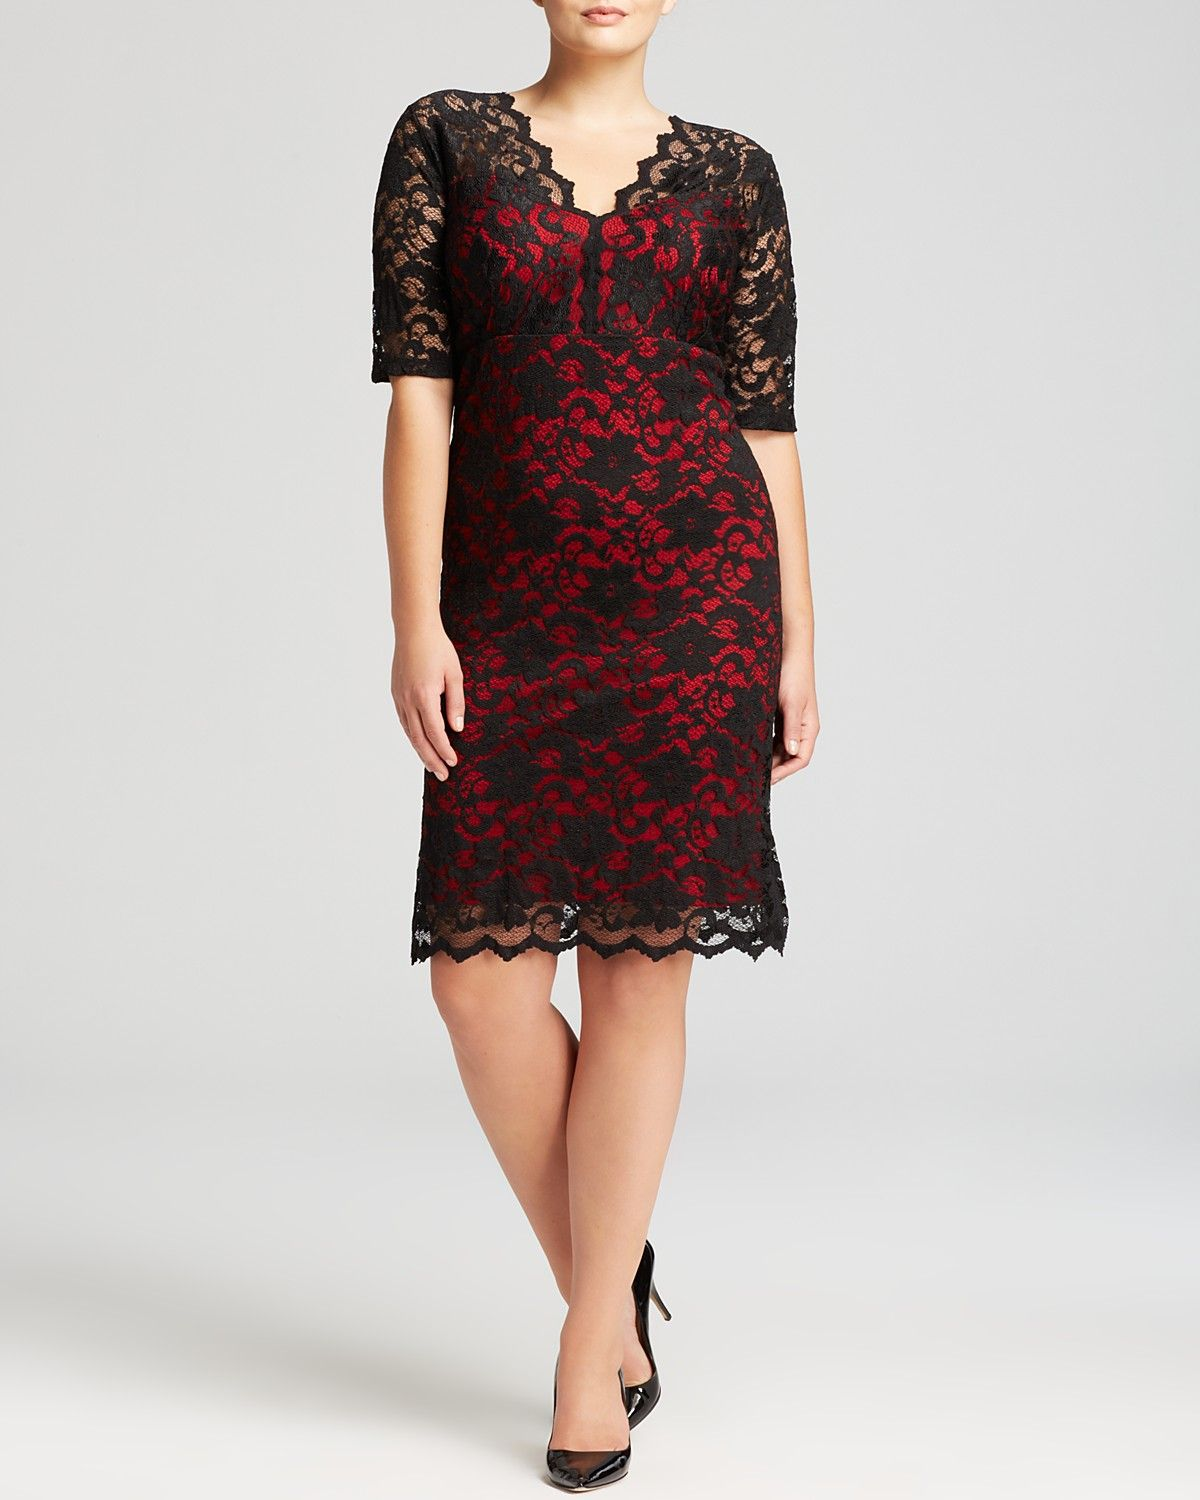 Curvy red and black scalloped black lace party dress